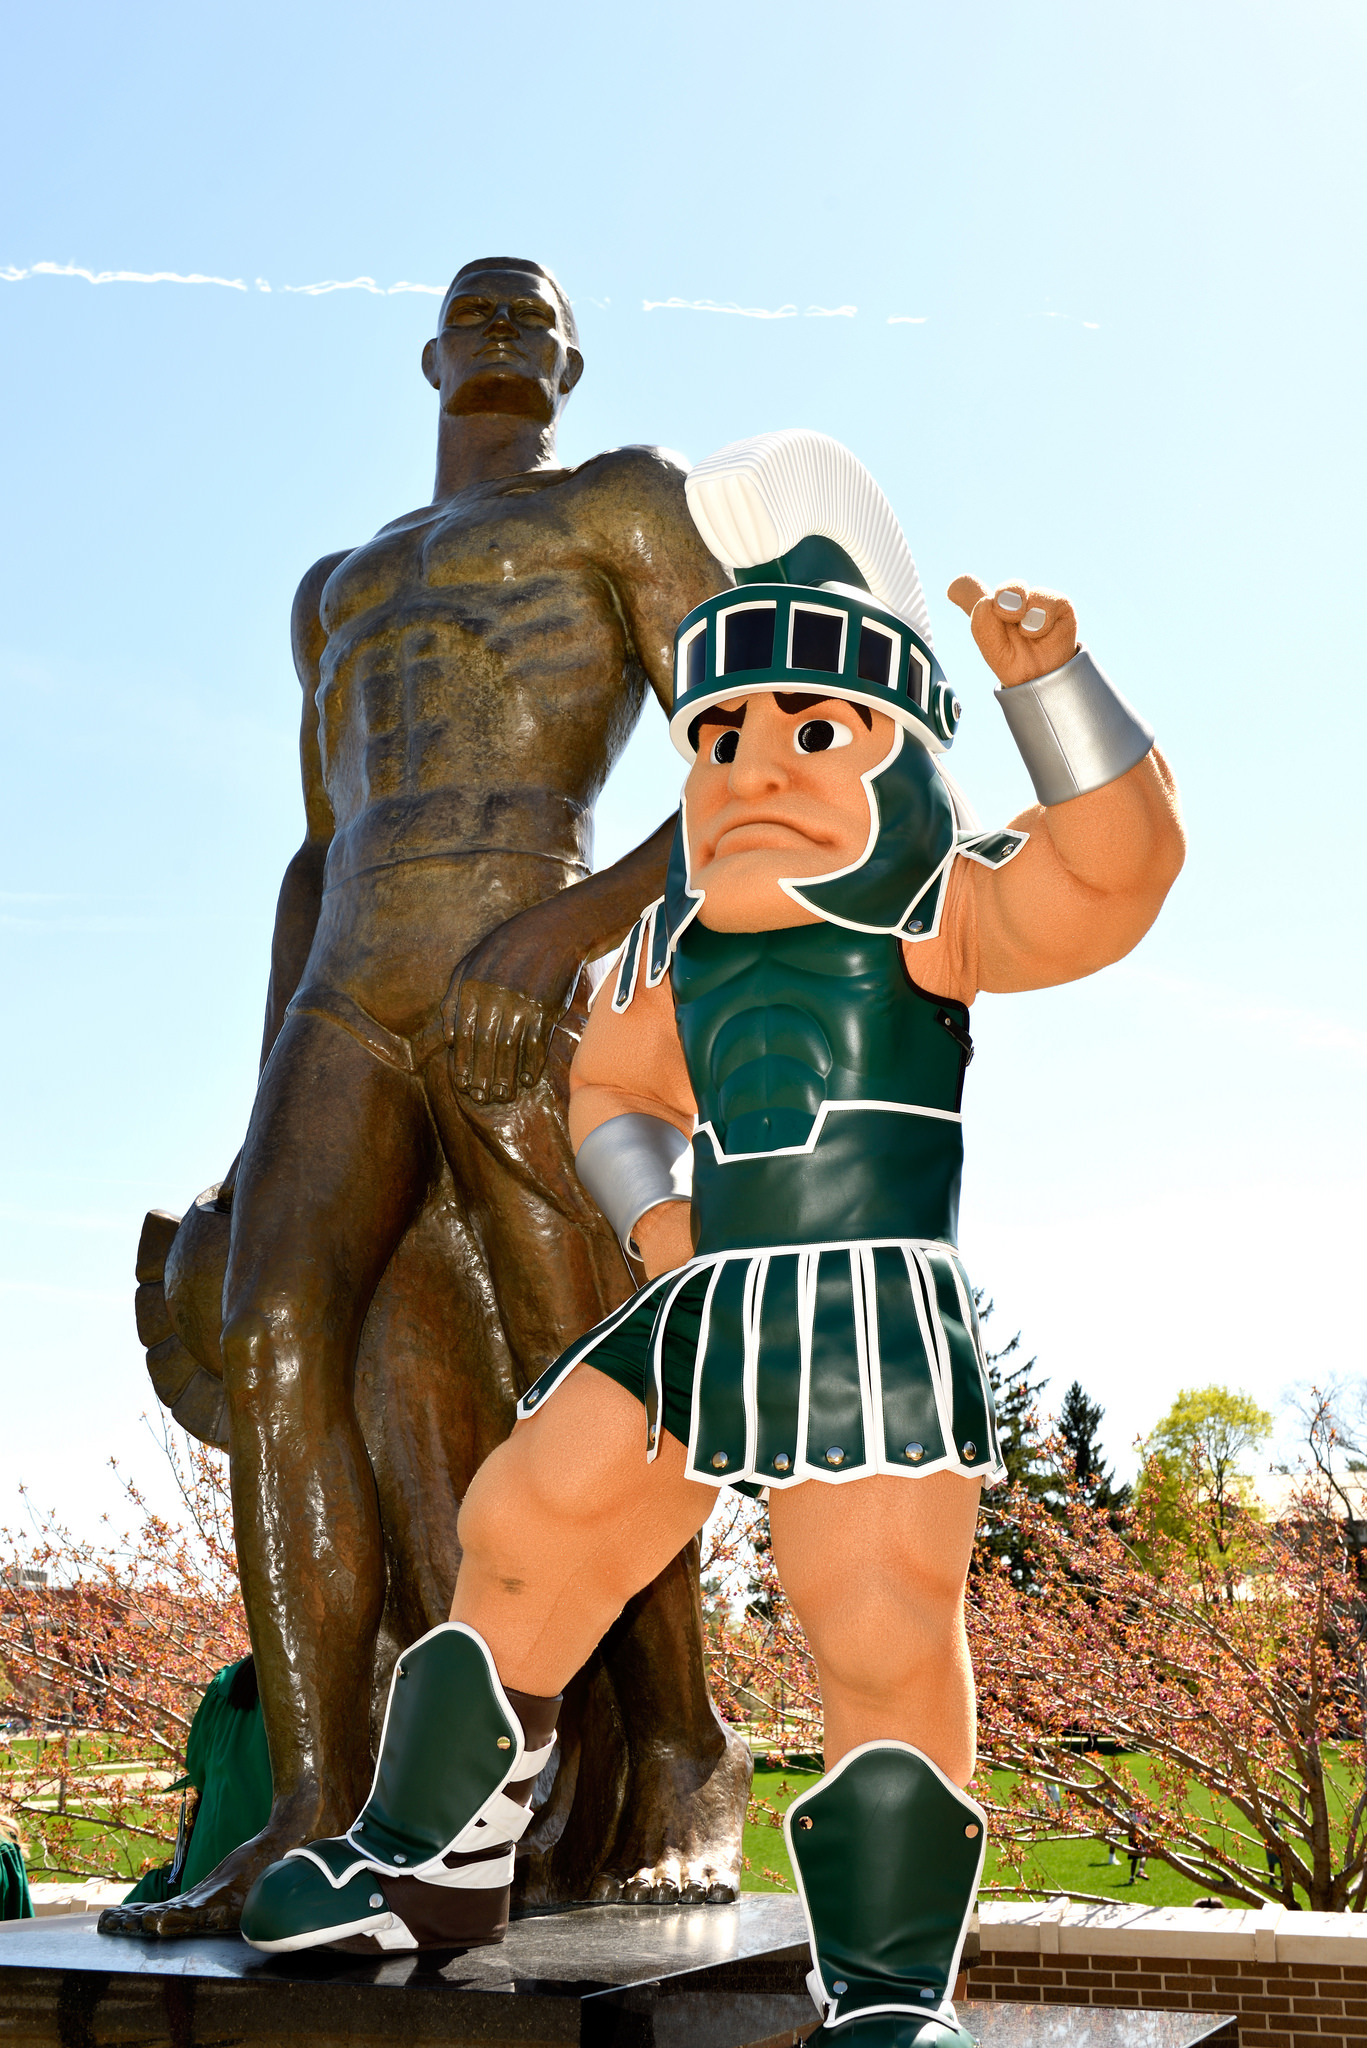 Sparty with the Sparty Statue